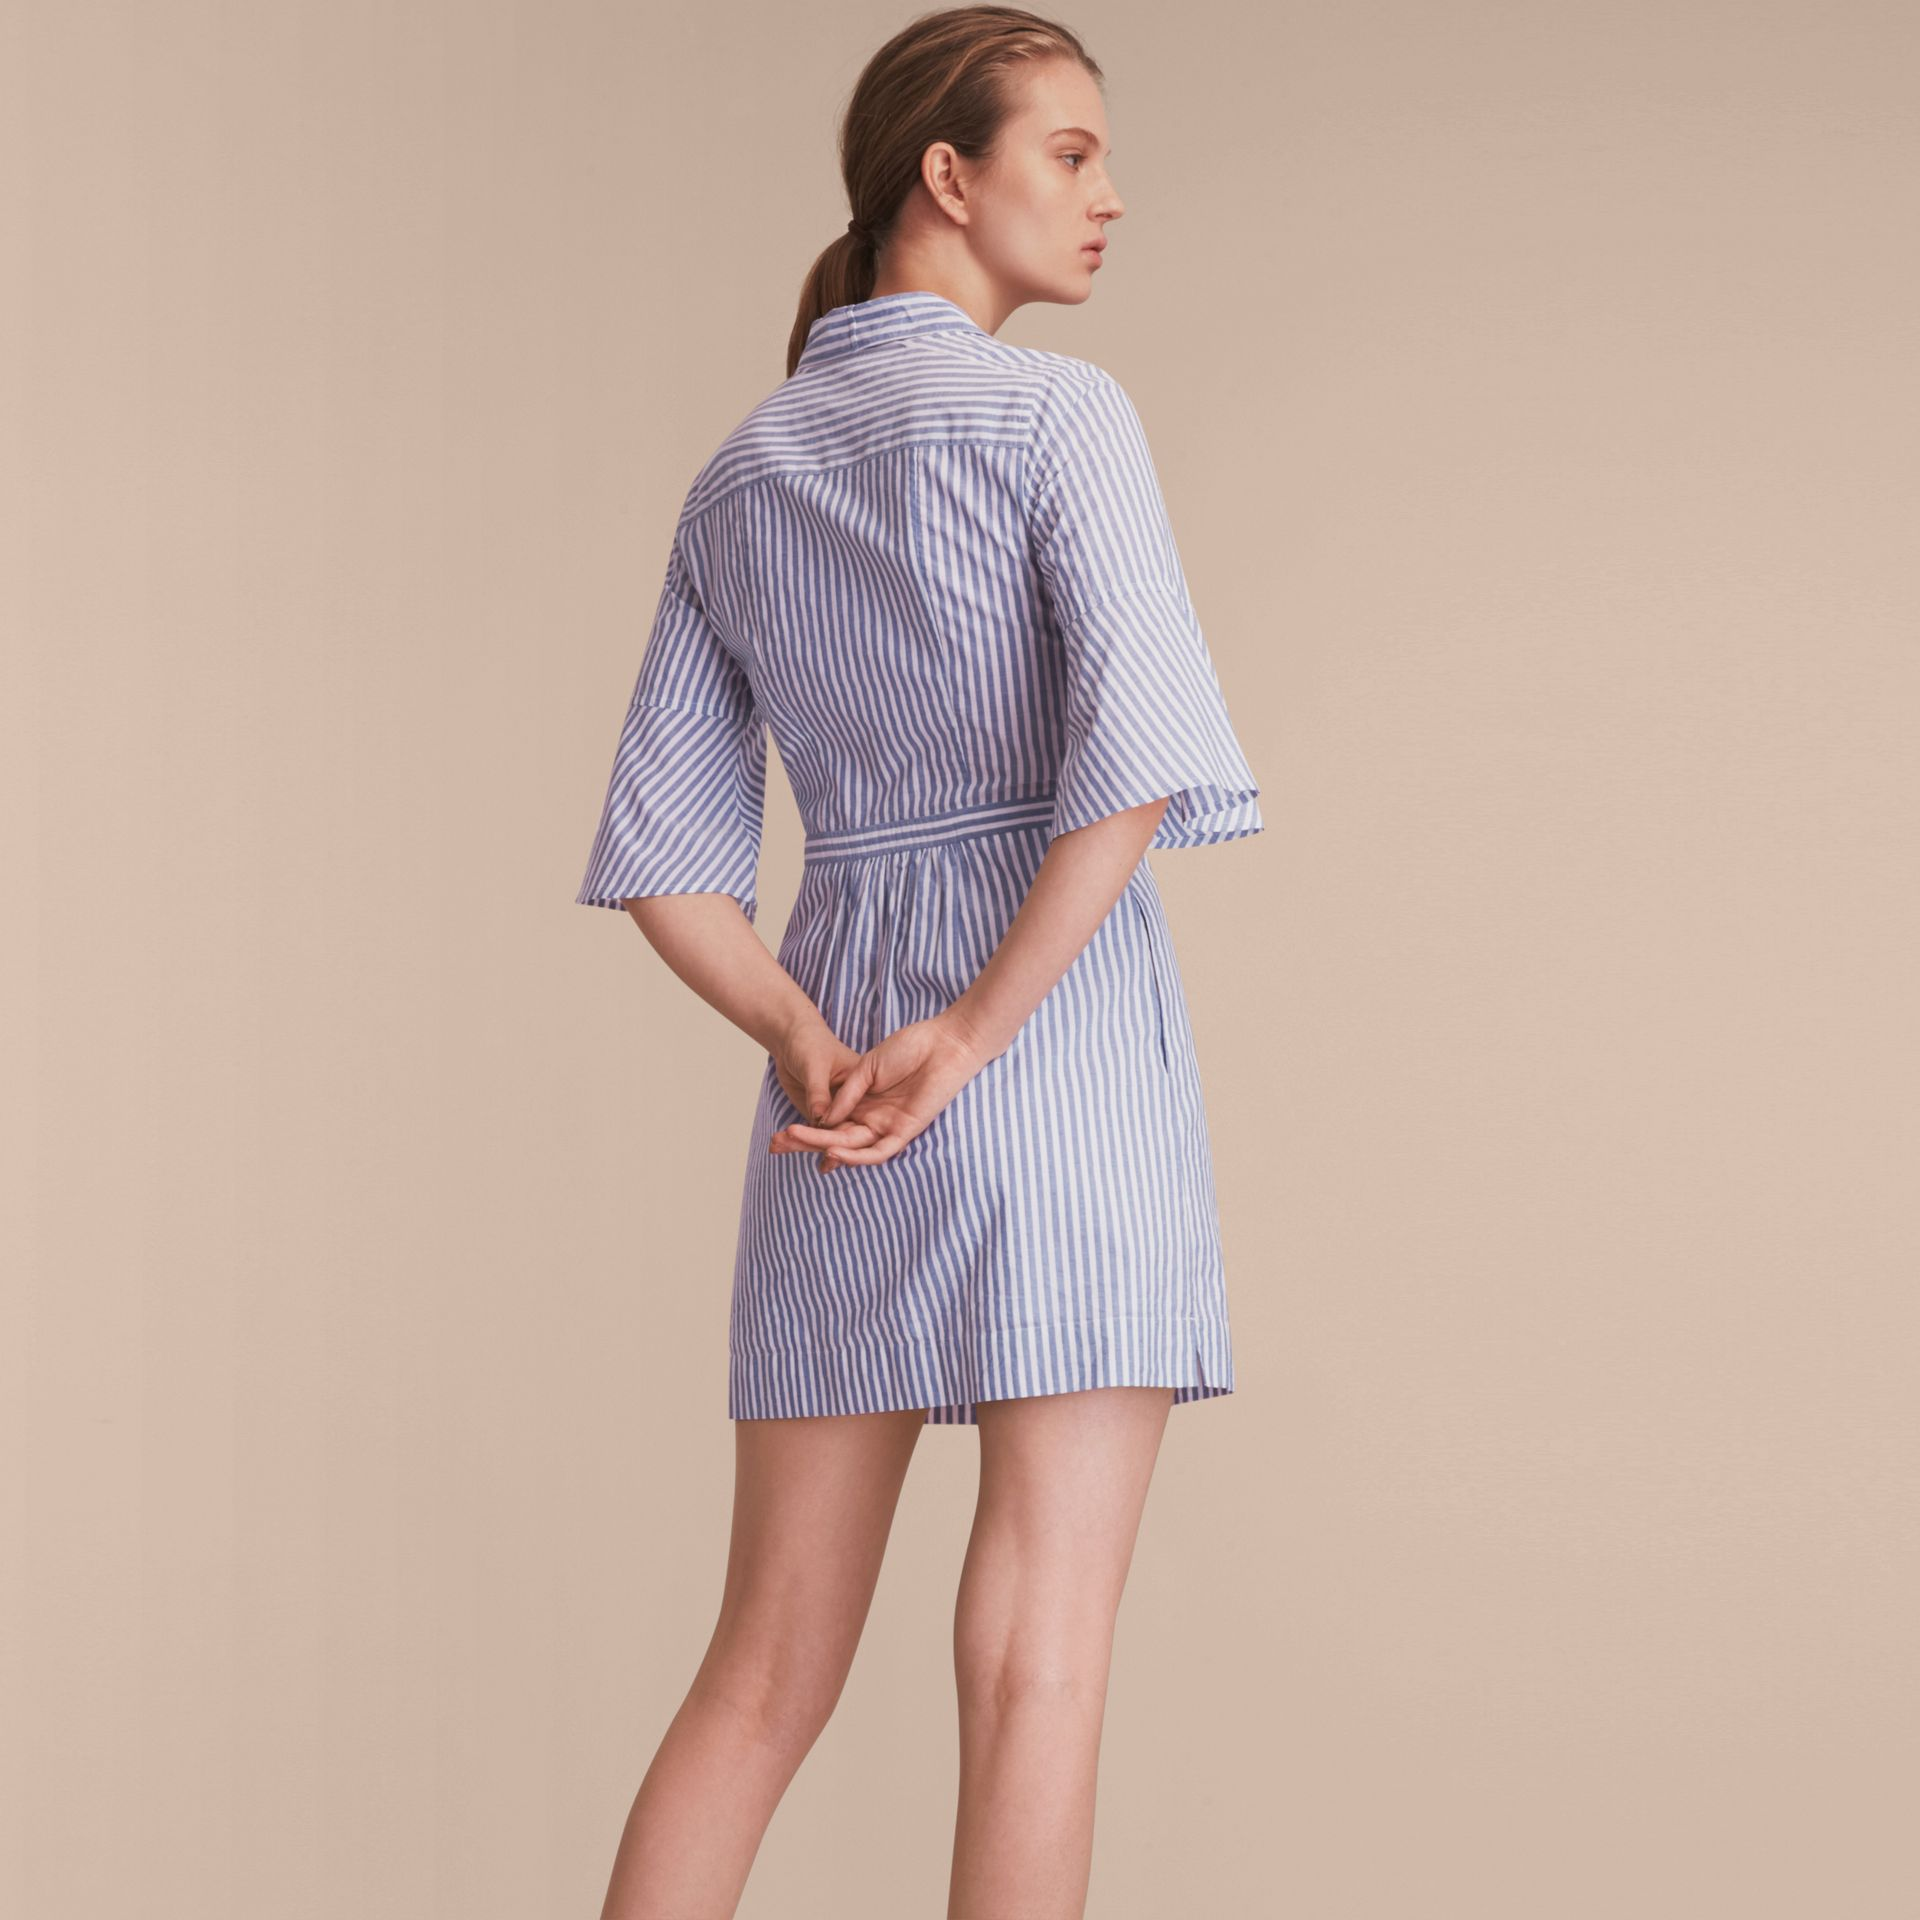 Bell-sleeve Striped Shirt Dress with Tie Neck in Pale Blue/white - Women | Burberry - gallery image 3